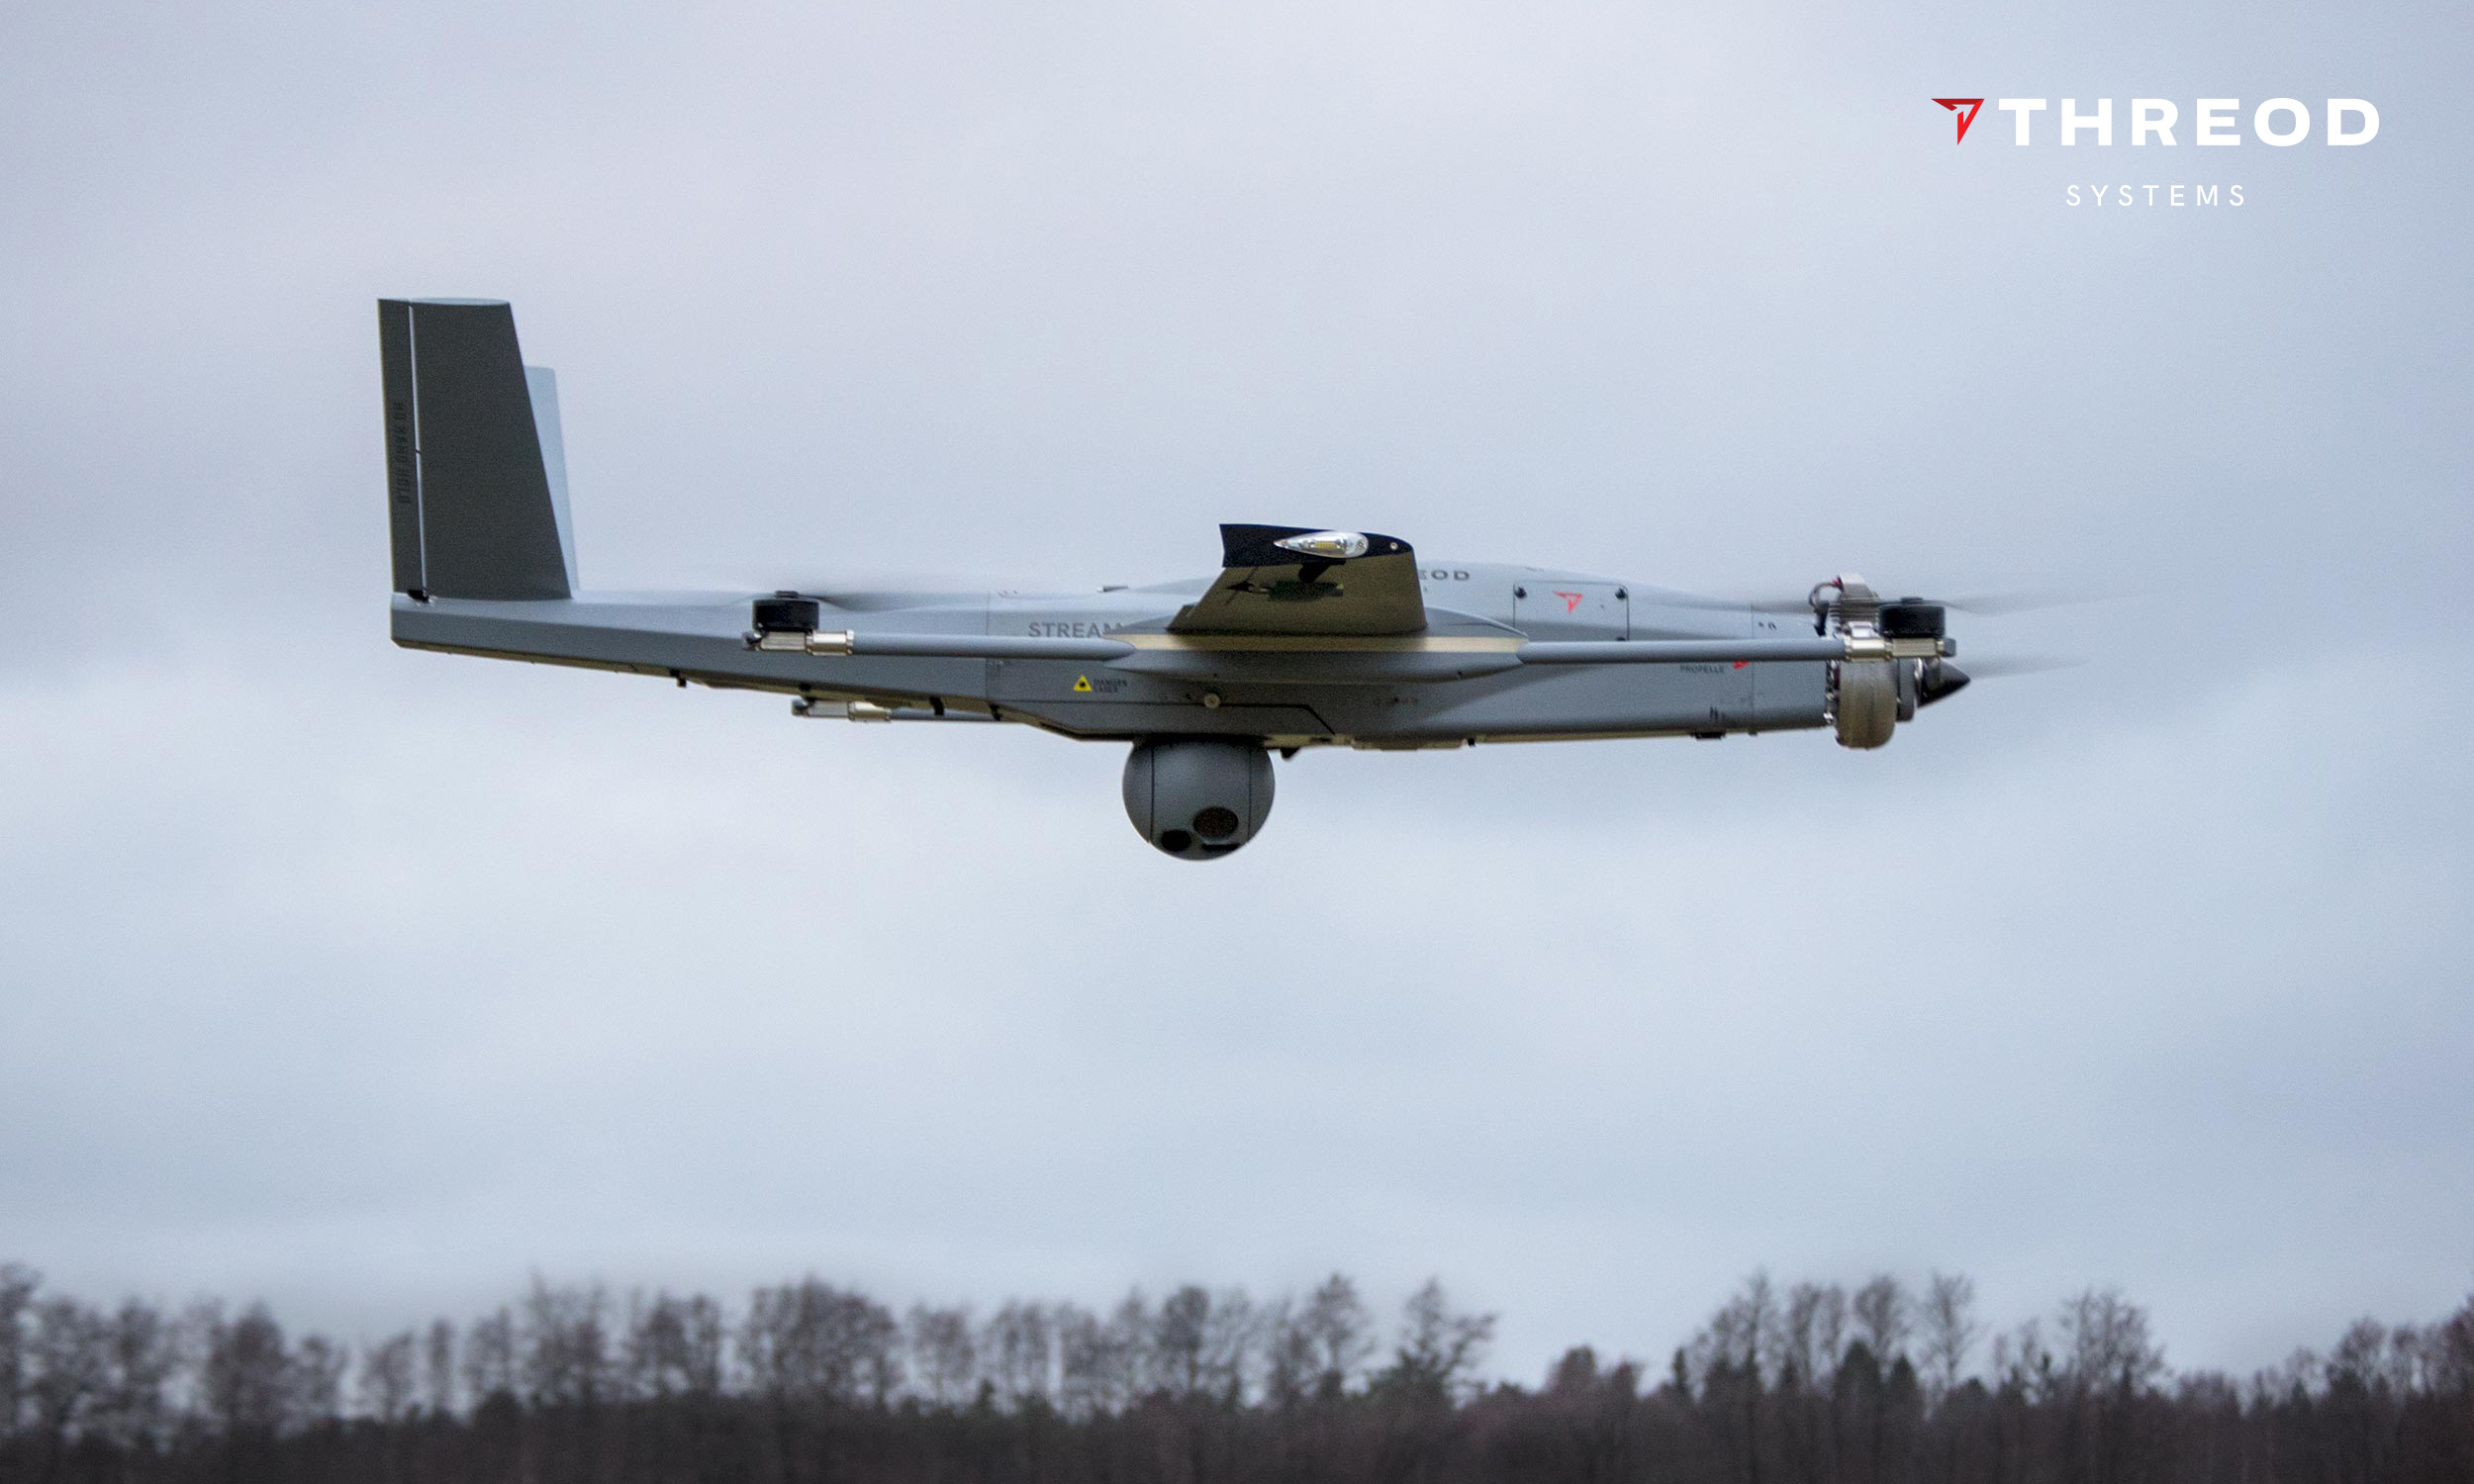 threod_systems_nato_class_stream_uav_vtol_news